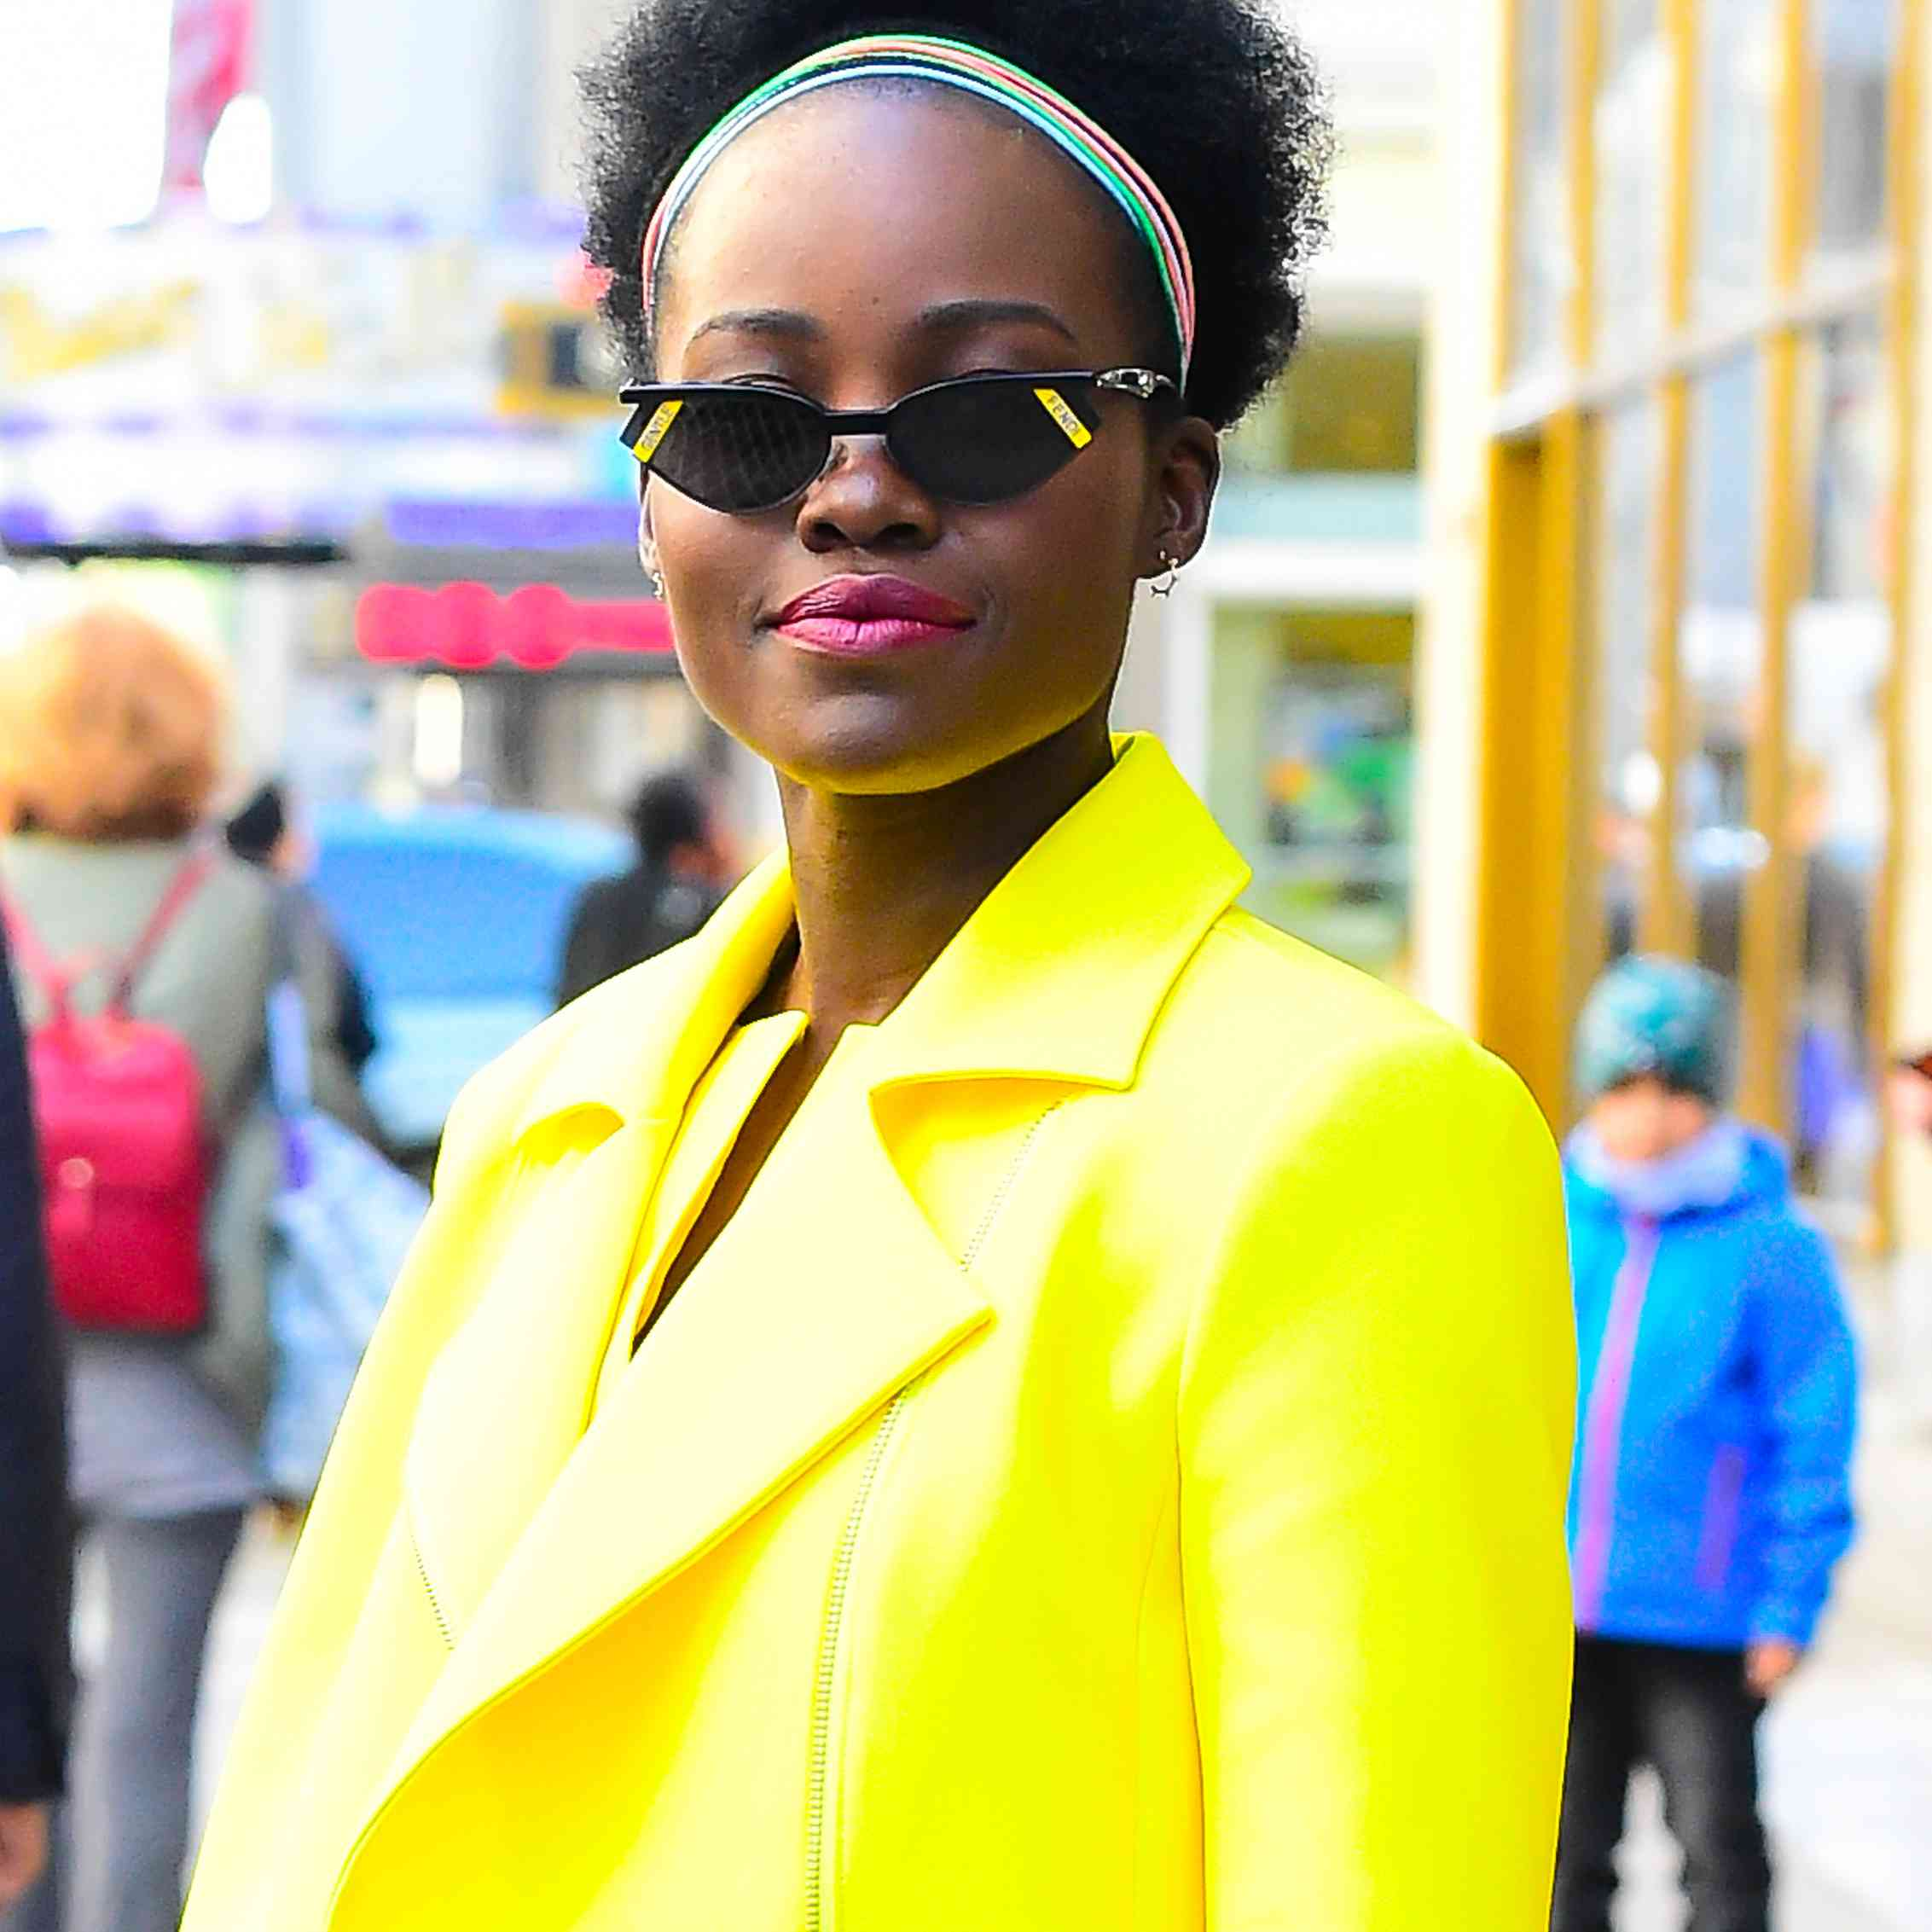 Lupita Nyong'o in Midtown New York wearing a yellow suit and magenta lipstick